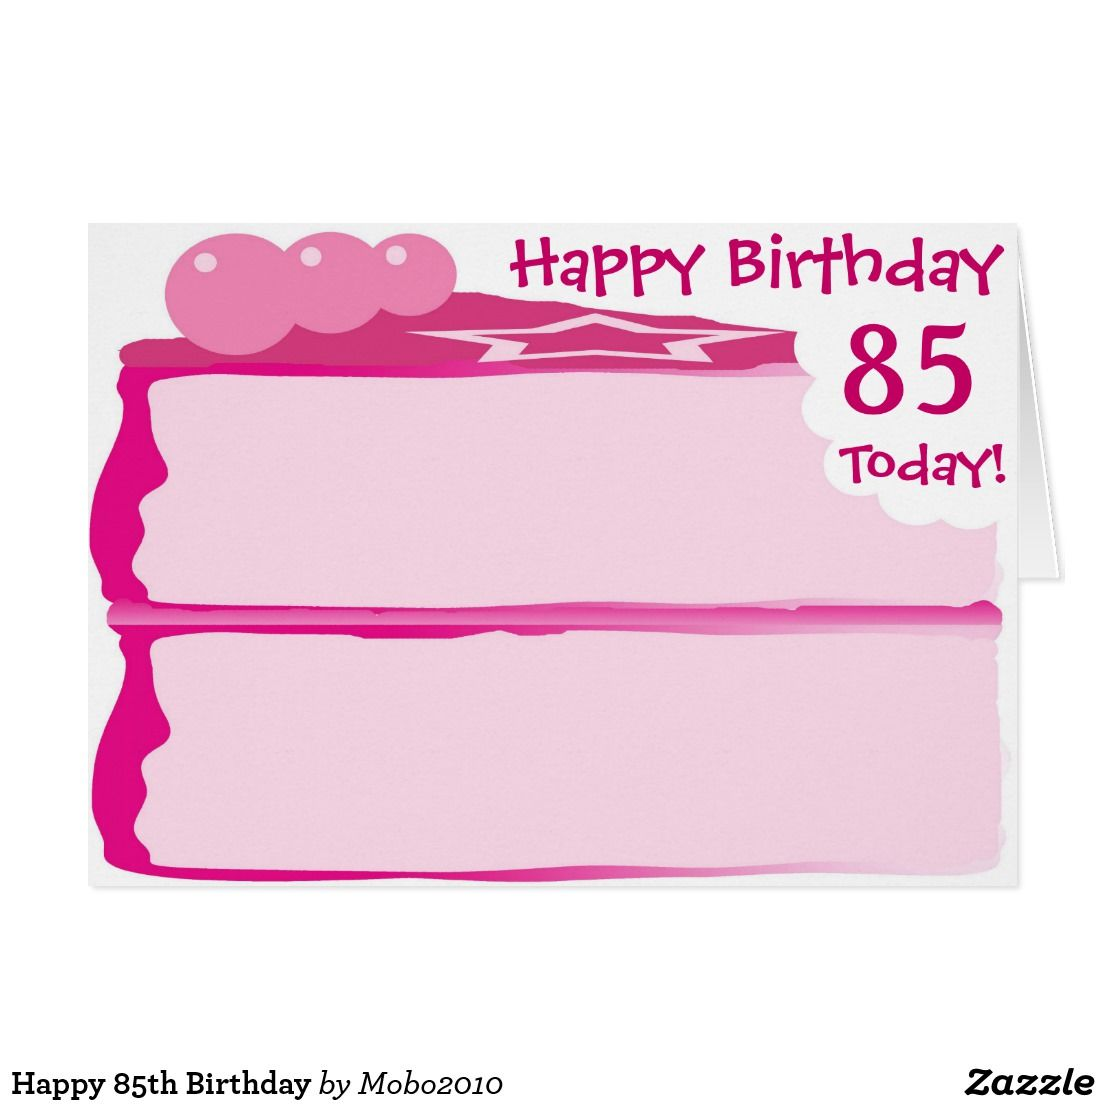 Happy 85th Birthday Card Birthday Cards Ages 1 100 Iced Pink